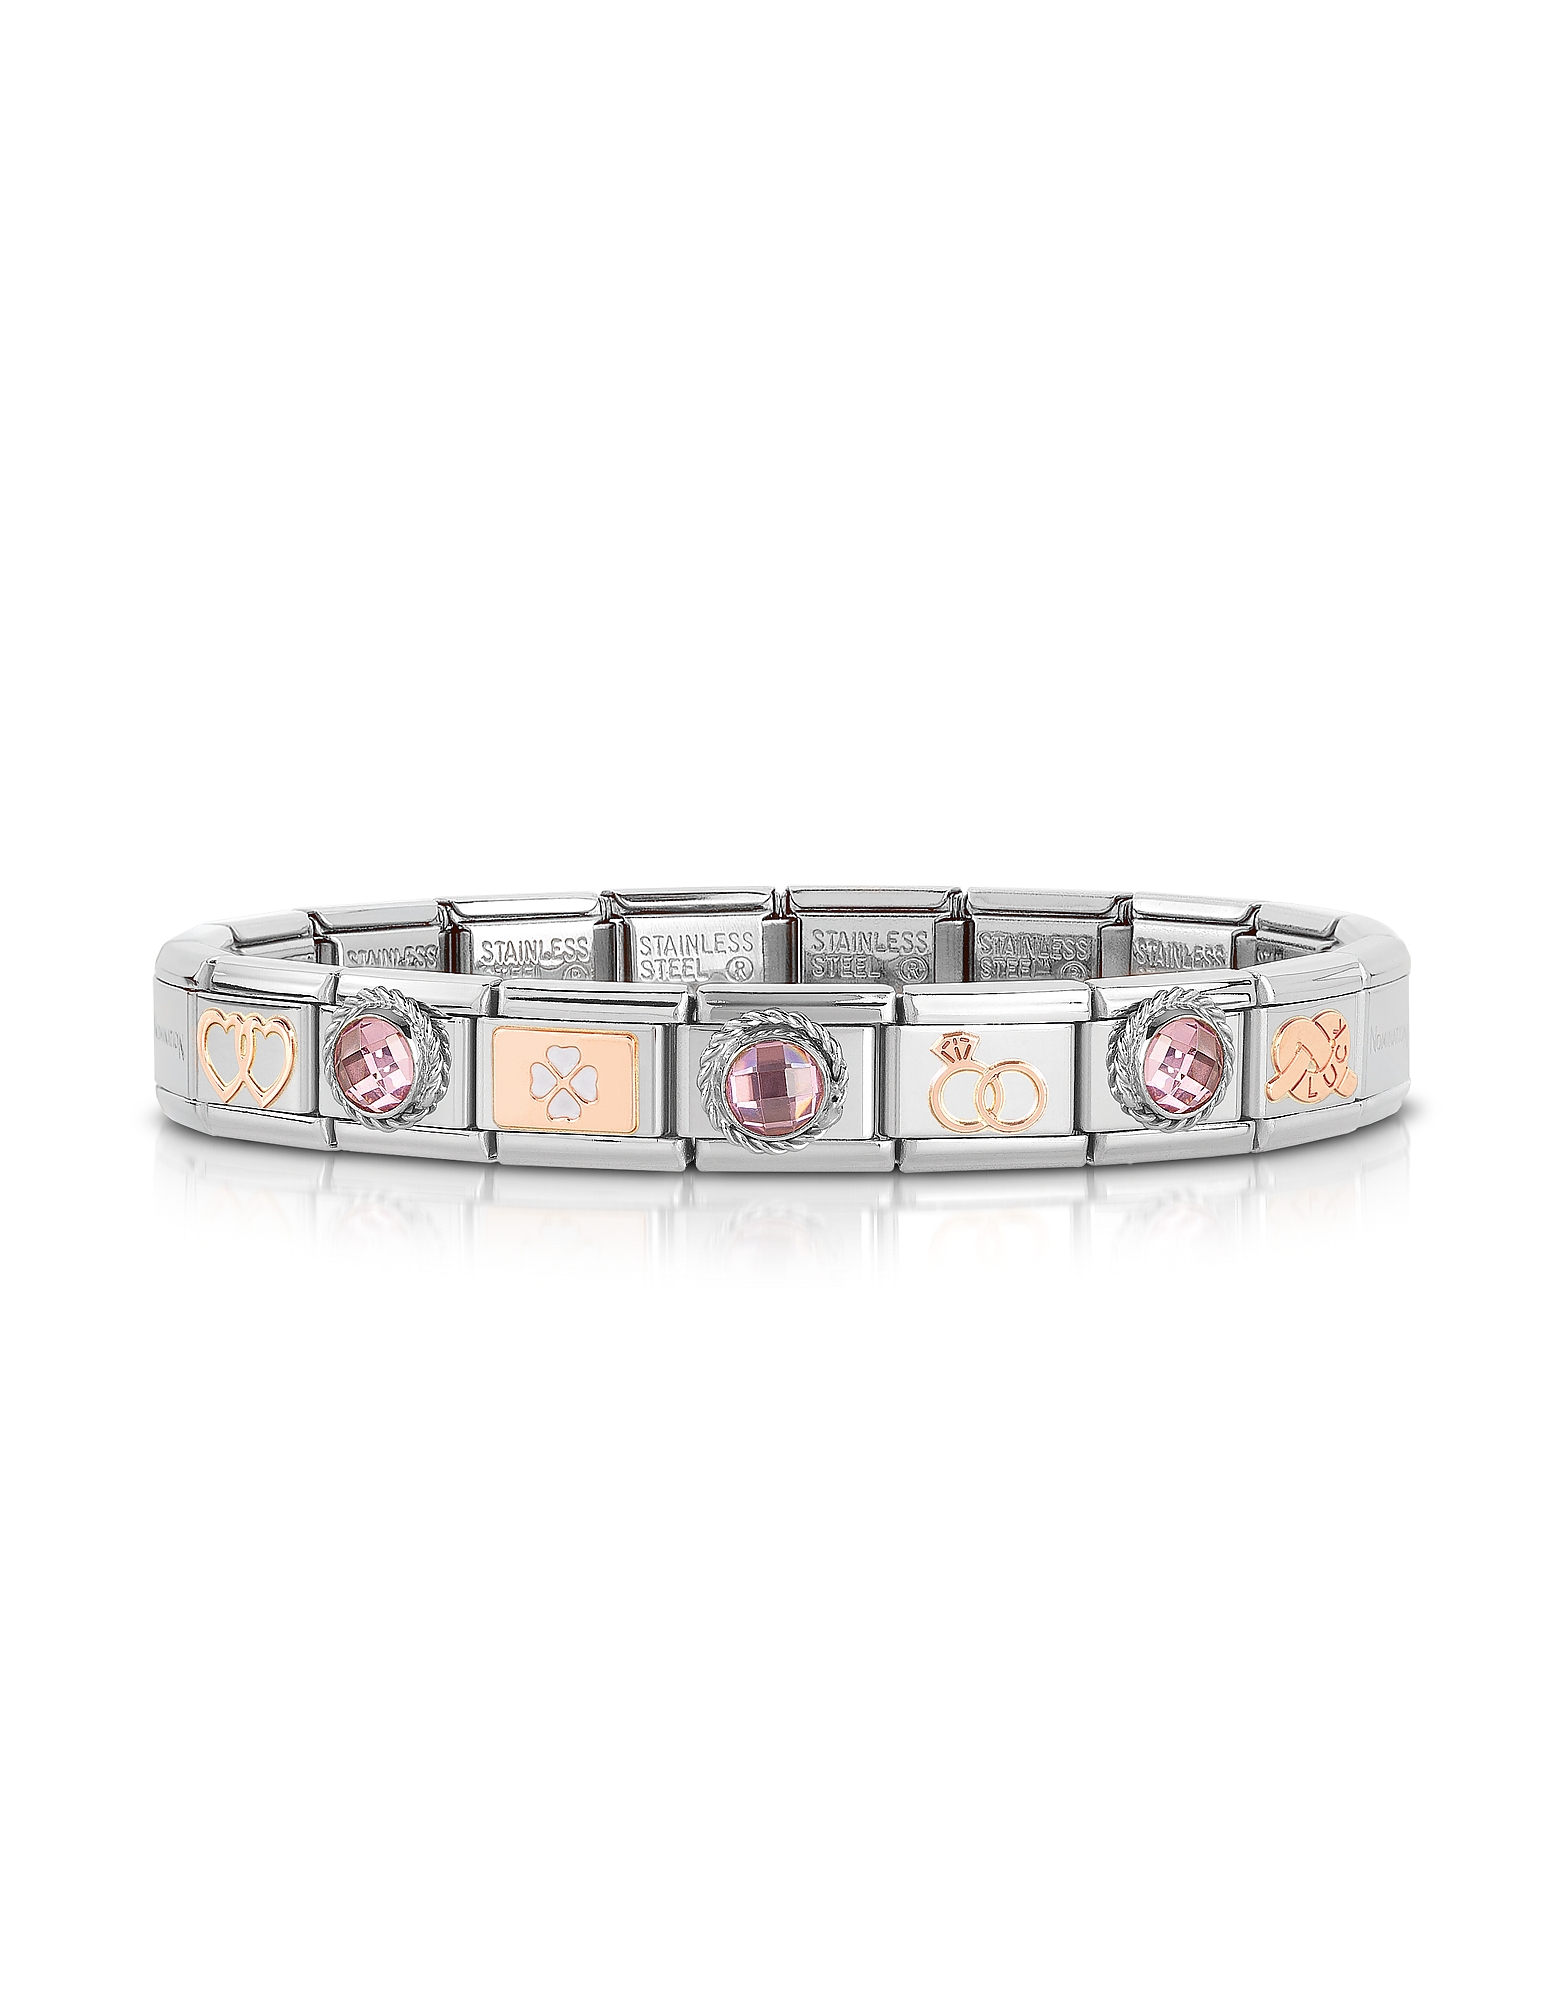 Nomination Bracelets, Classic Amore Rose Gold and Stainless Steel Bracelet w/Gemstone